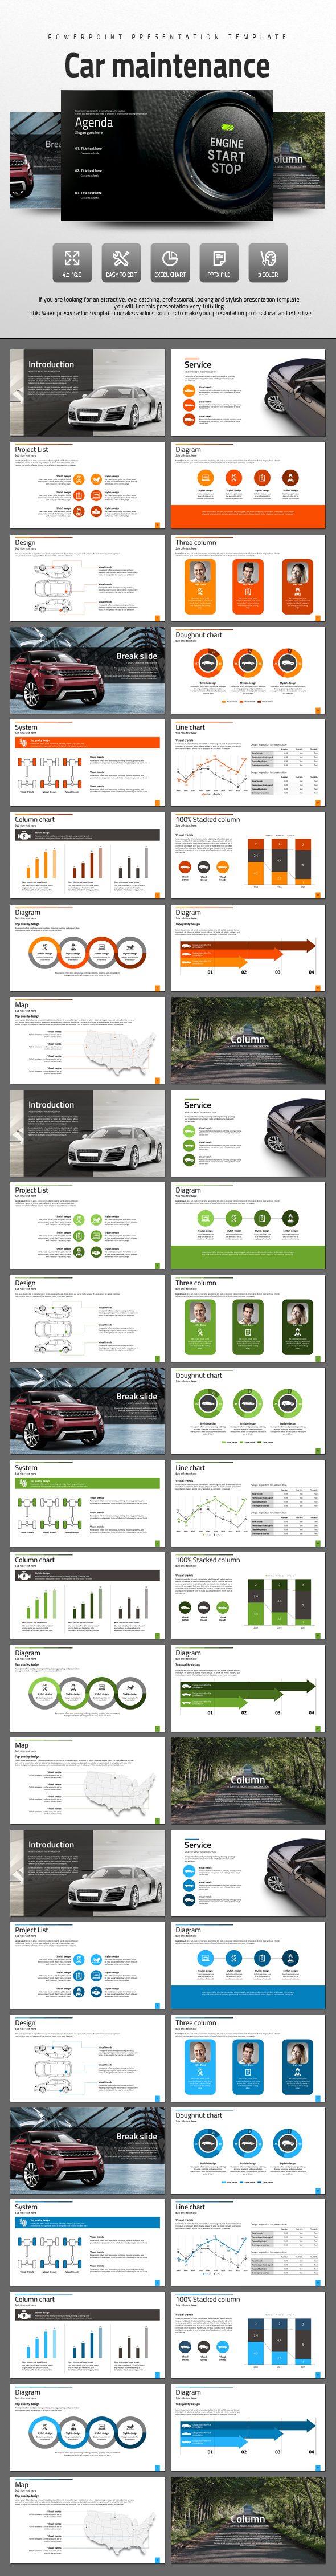 Car Maintenance - PowerPoint Templates Presentation Templates